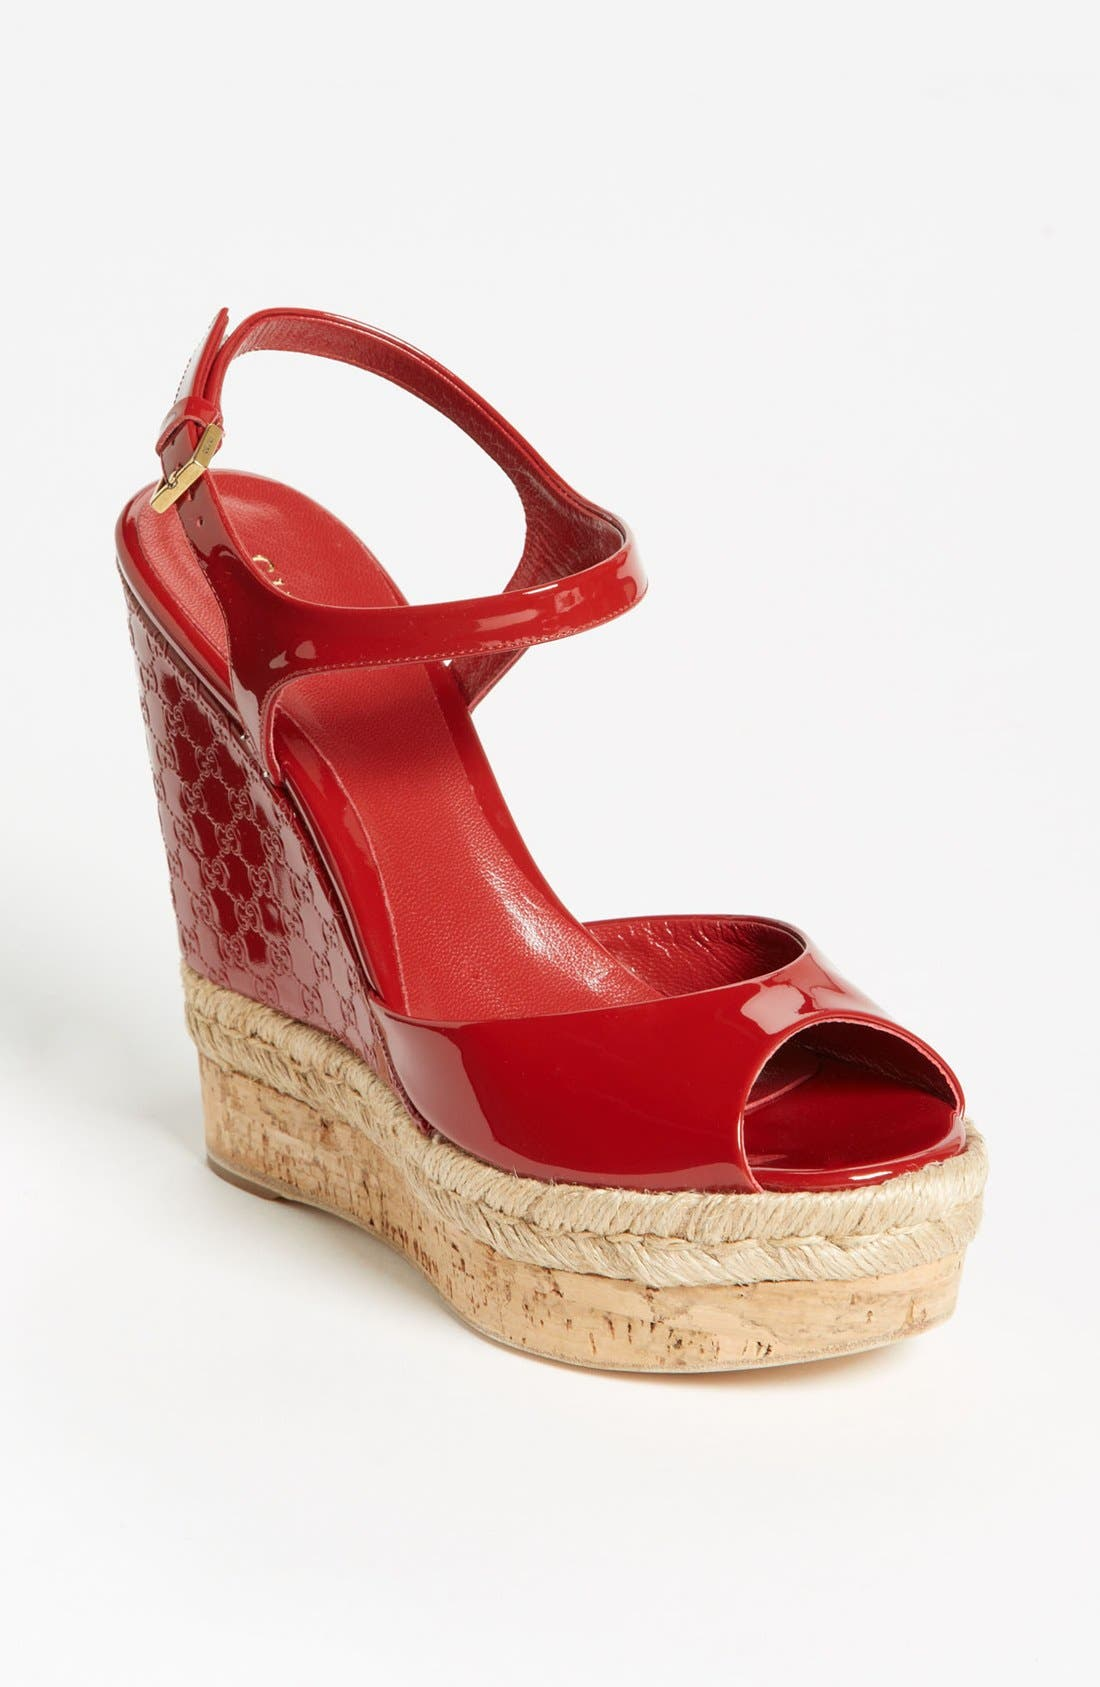 Alternate Image 1 Selected - Gucci 'Hollie' Wedge Sandal